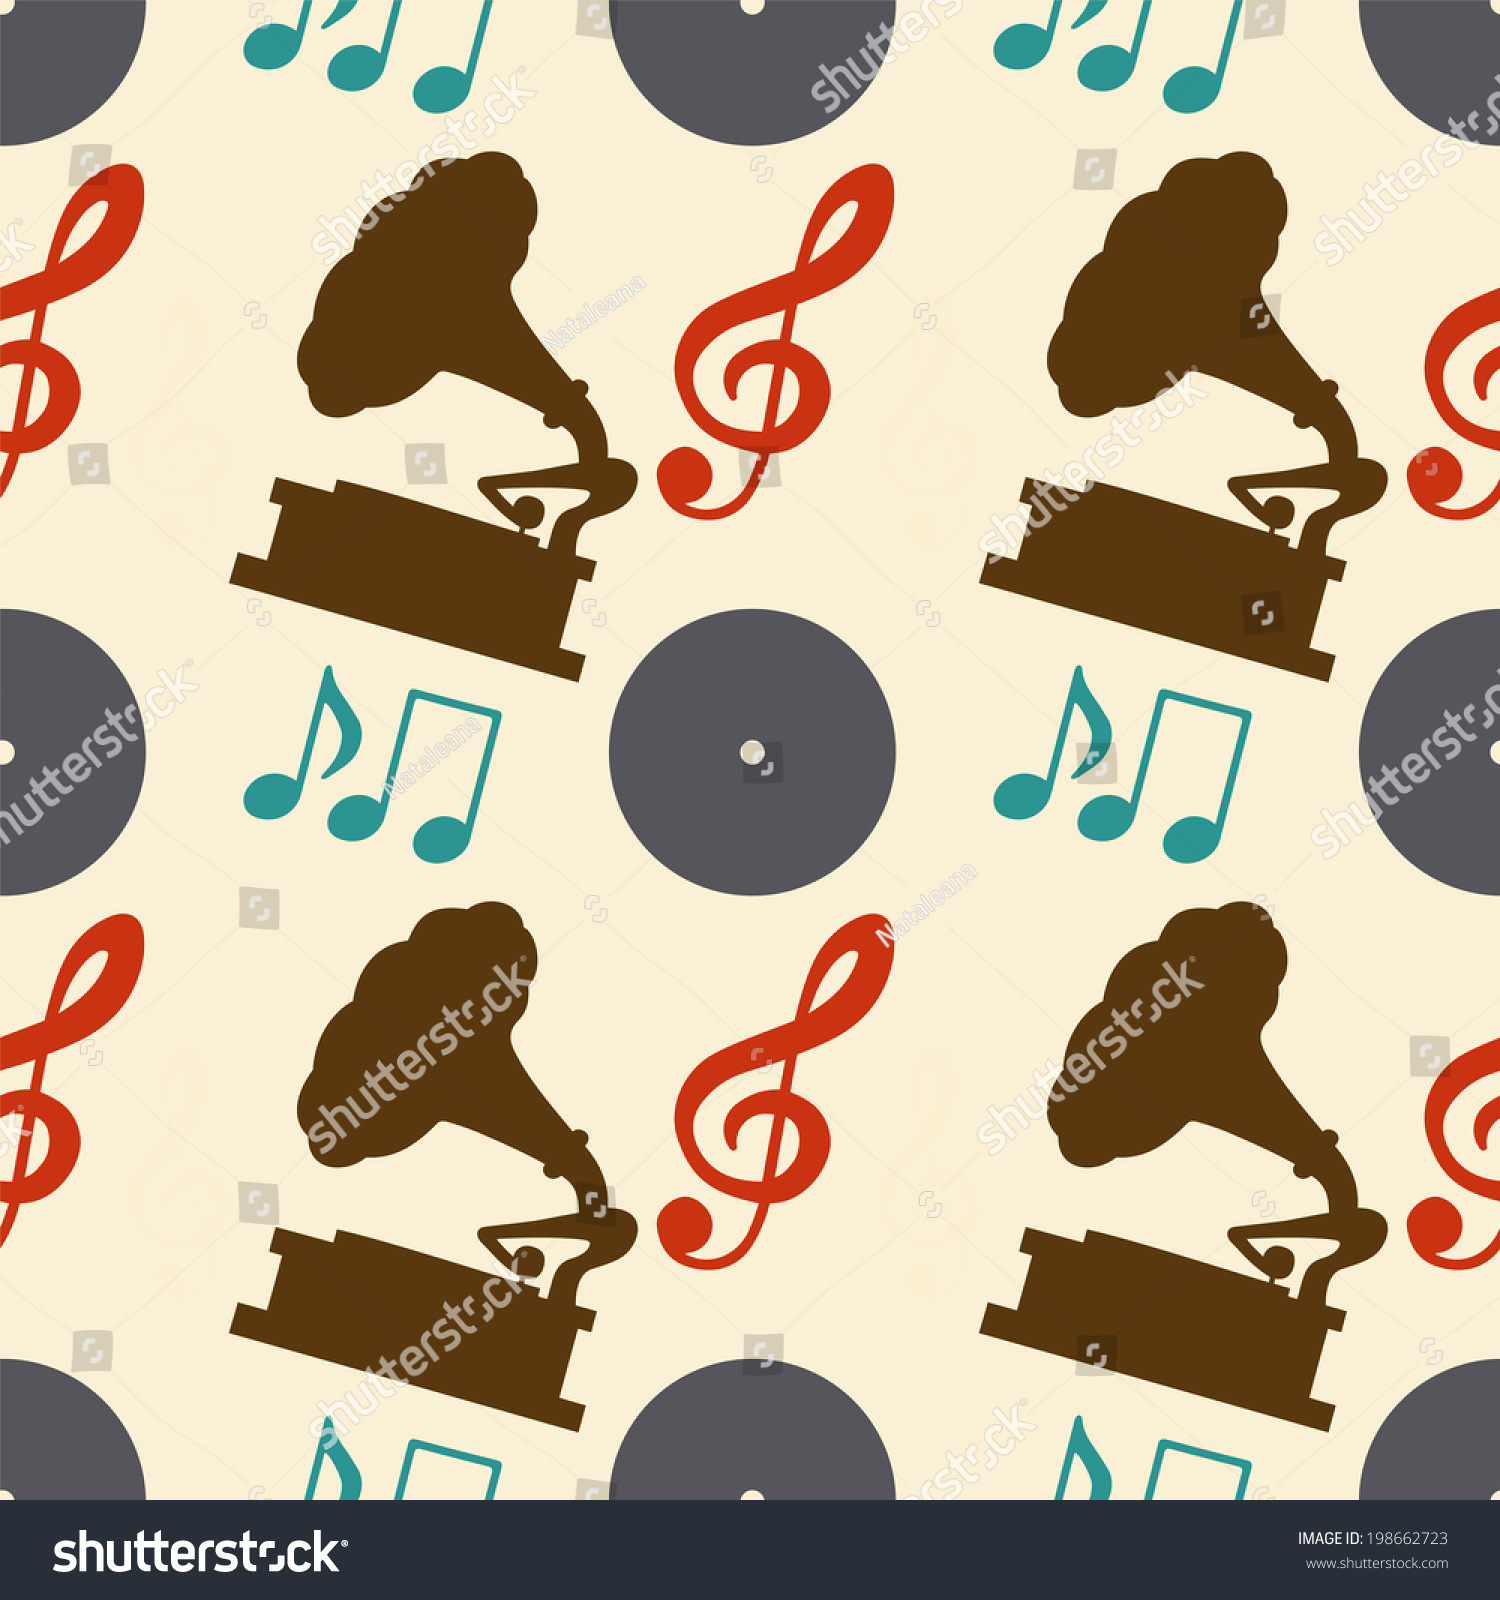 Musical Vinyl Wallpaper: Musical Seamless Pattern With Silhouettes Music Notes